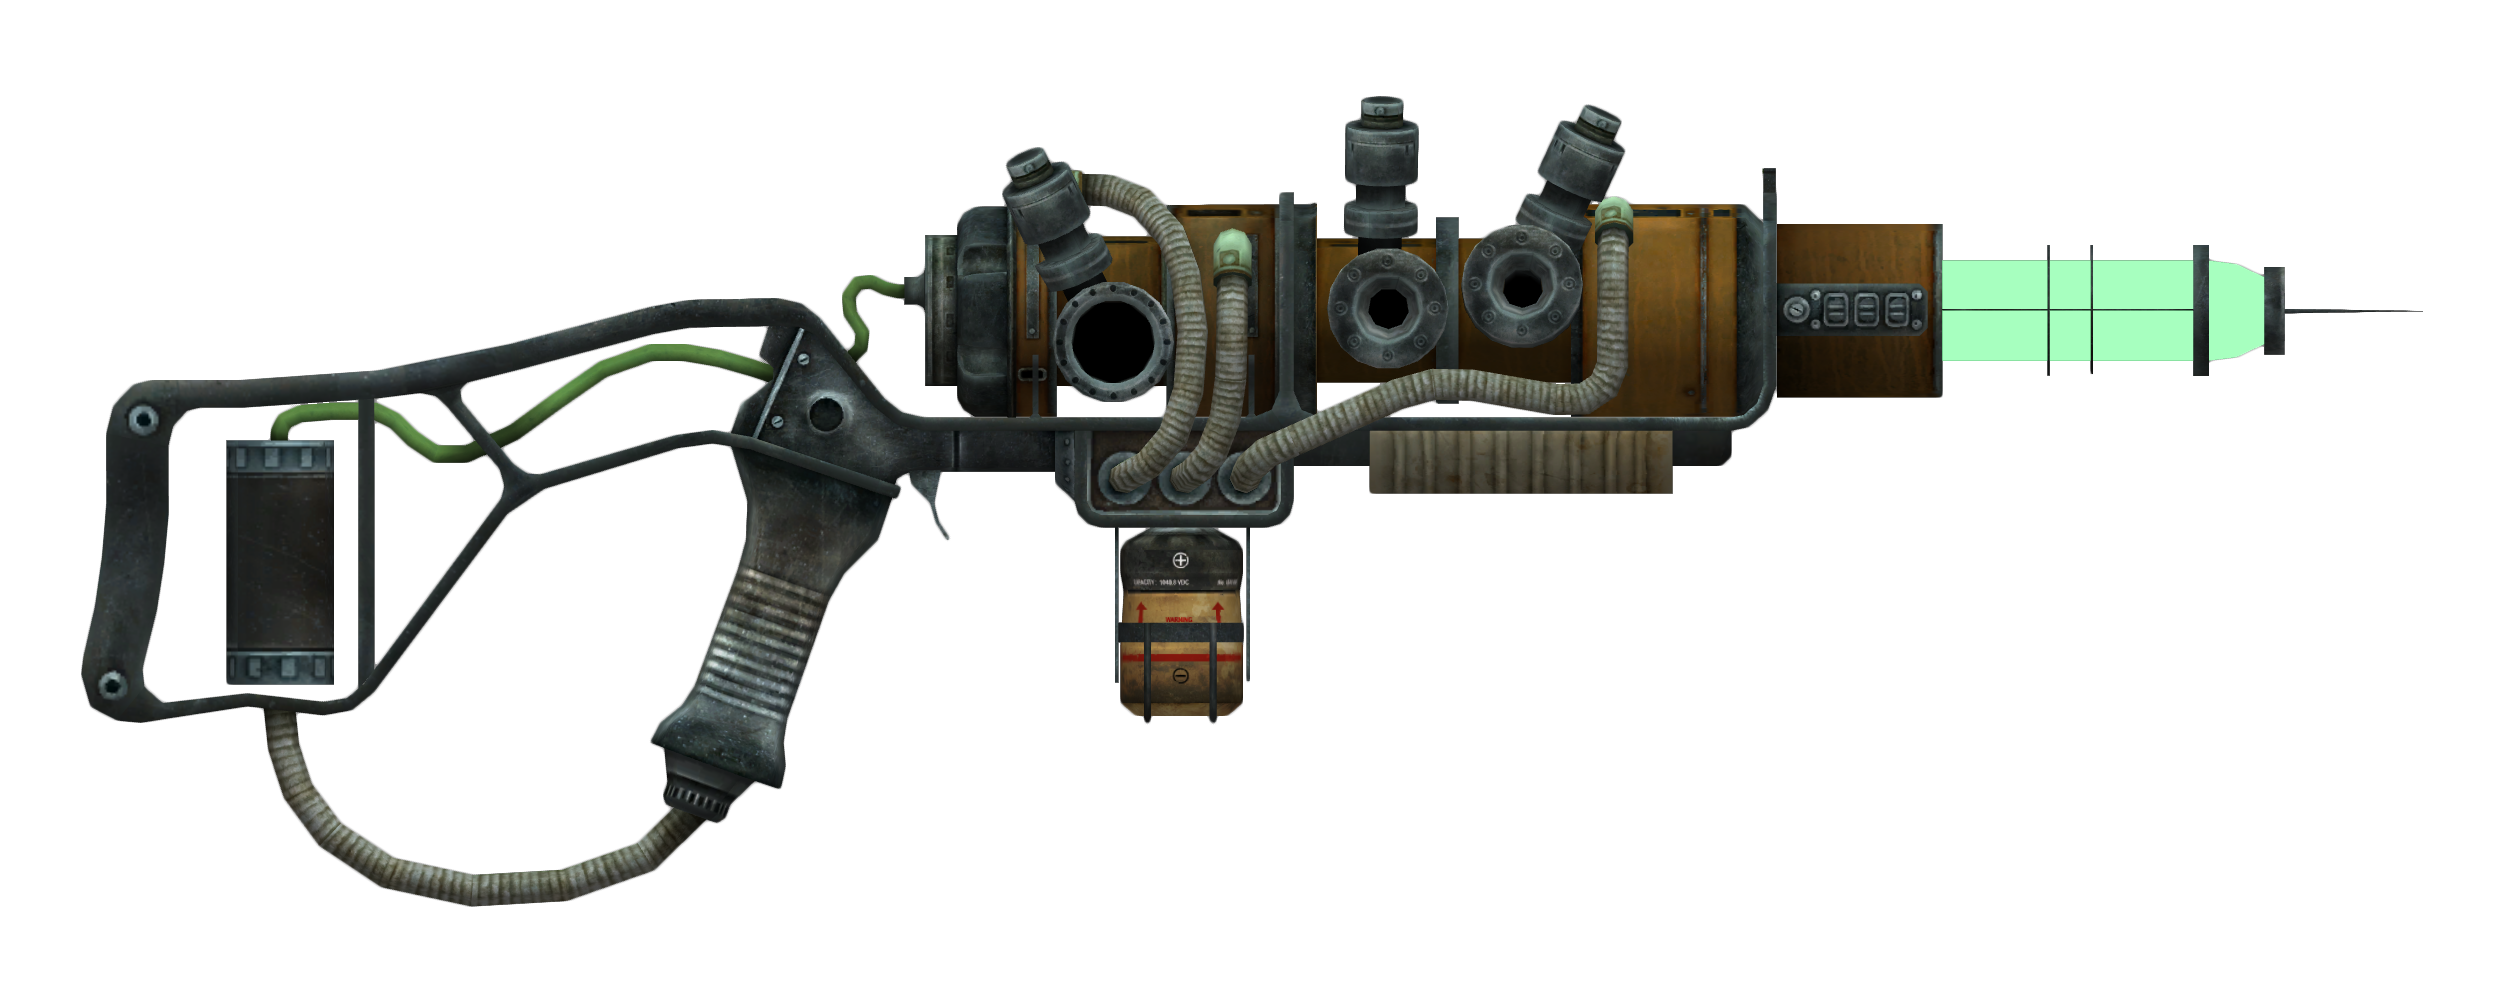 http://images.wikia.com/fallout/images/6/6c/PlasmaRifle.png